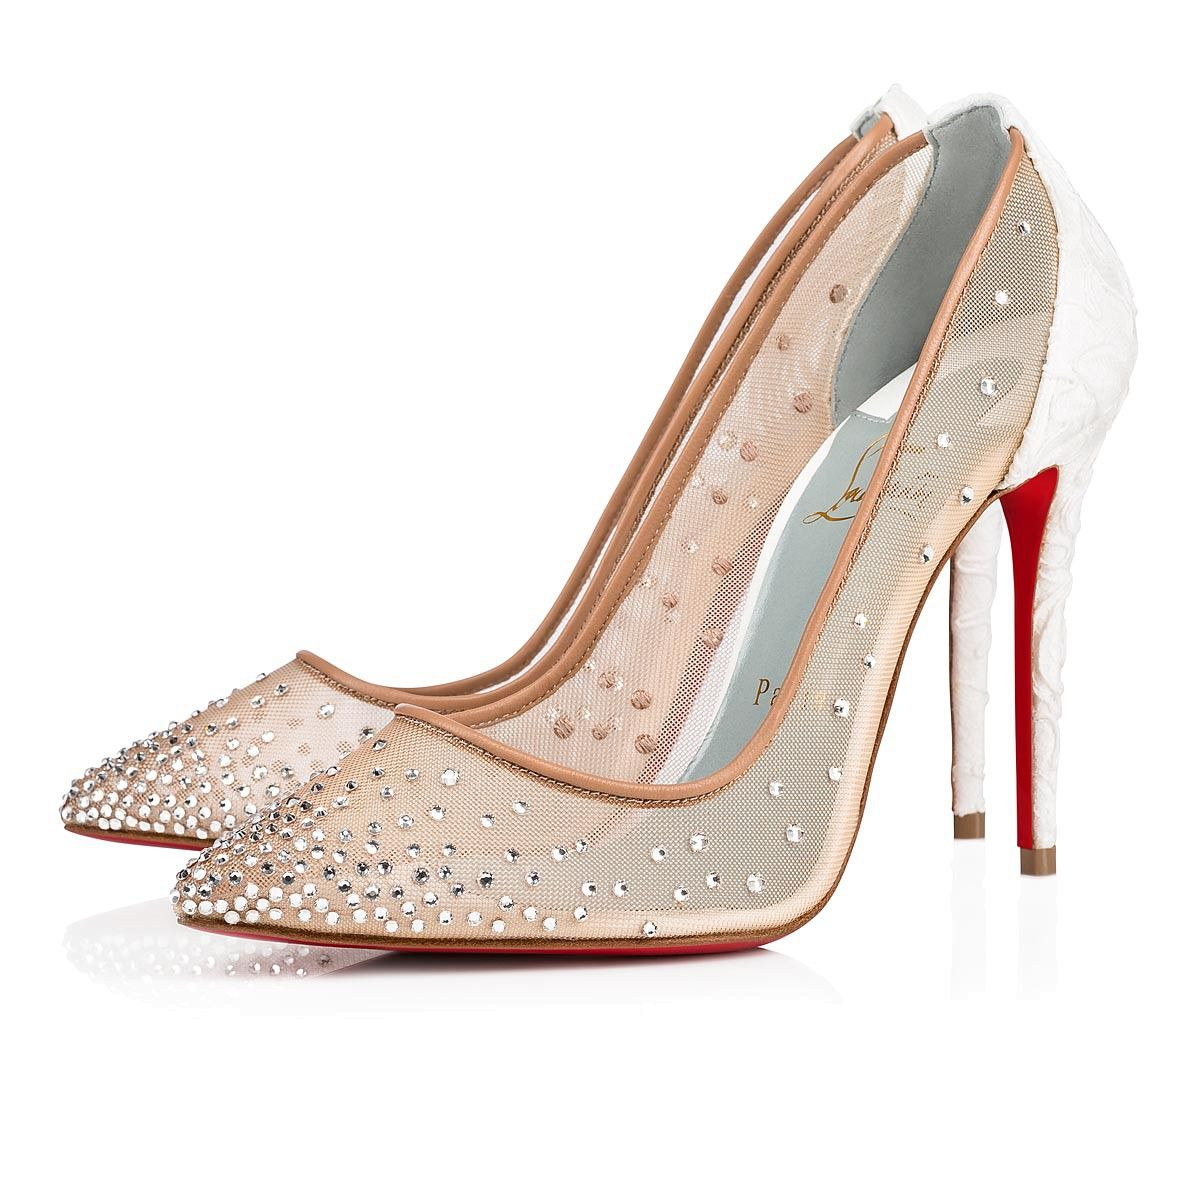 82a318d3b35 Christian Louboutin Follies Strass in 2019 | SEXY-DELIRIOUS AND ...